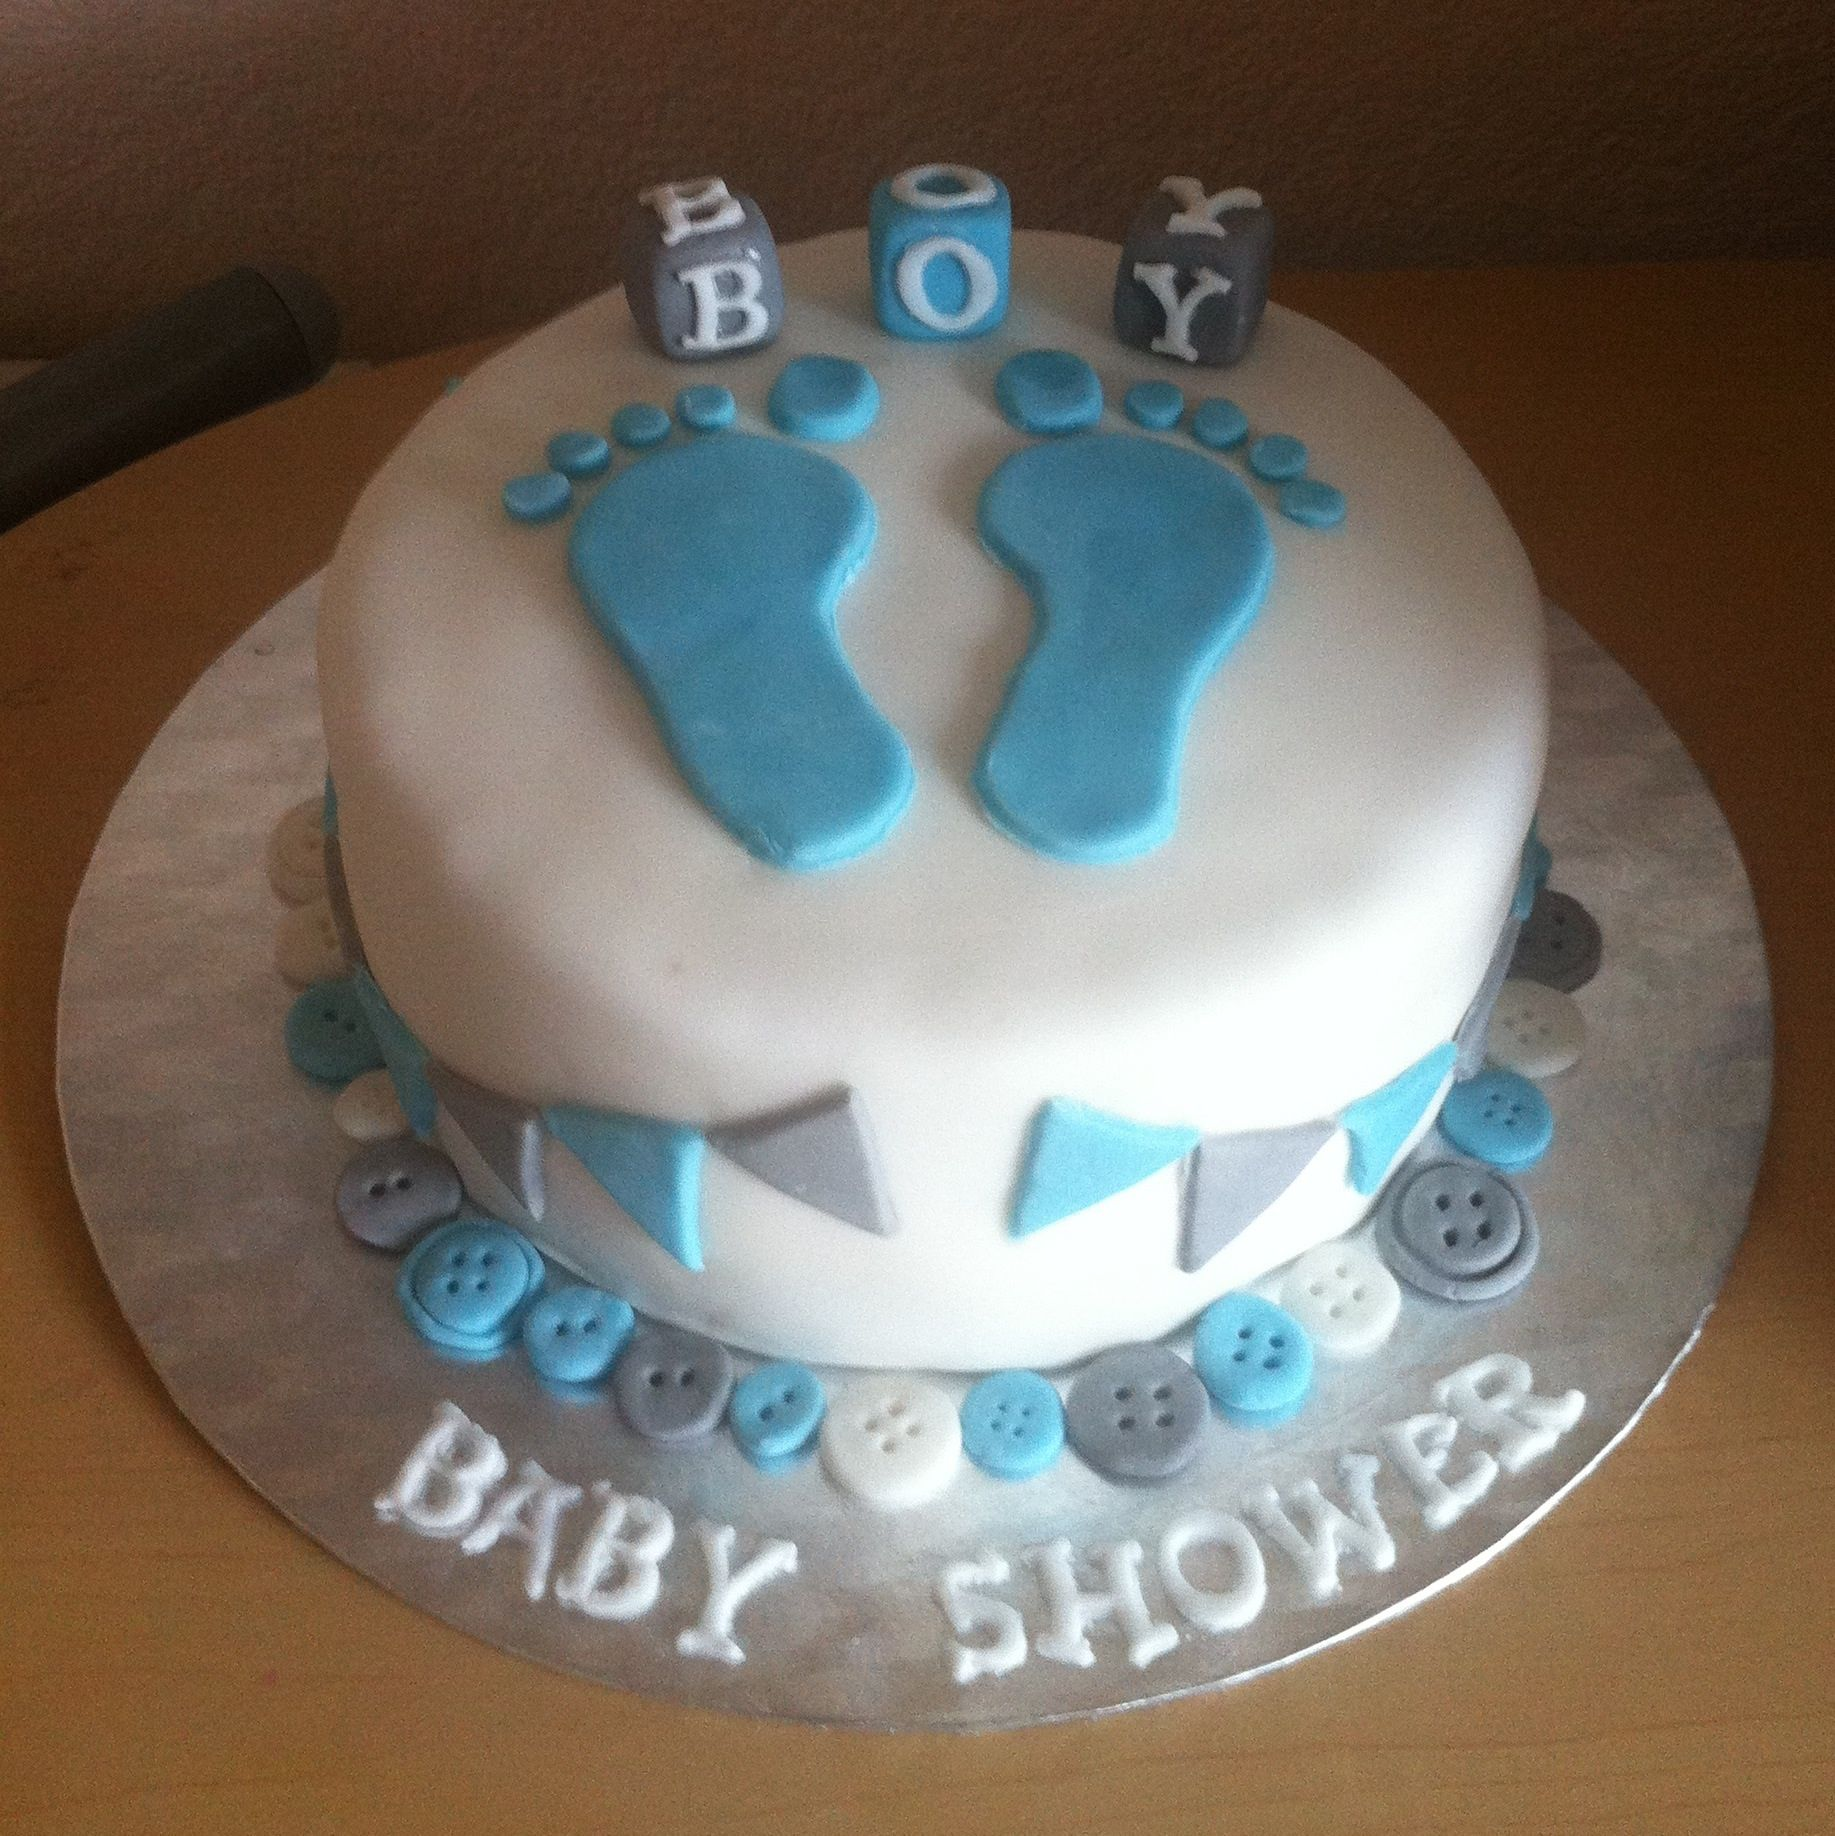 Boys Baby Shower Cake: Baby Boy Baby Shower Cake With Fondant Footprints, Blocks